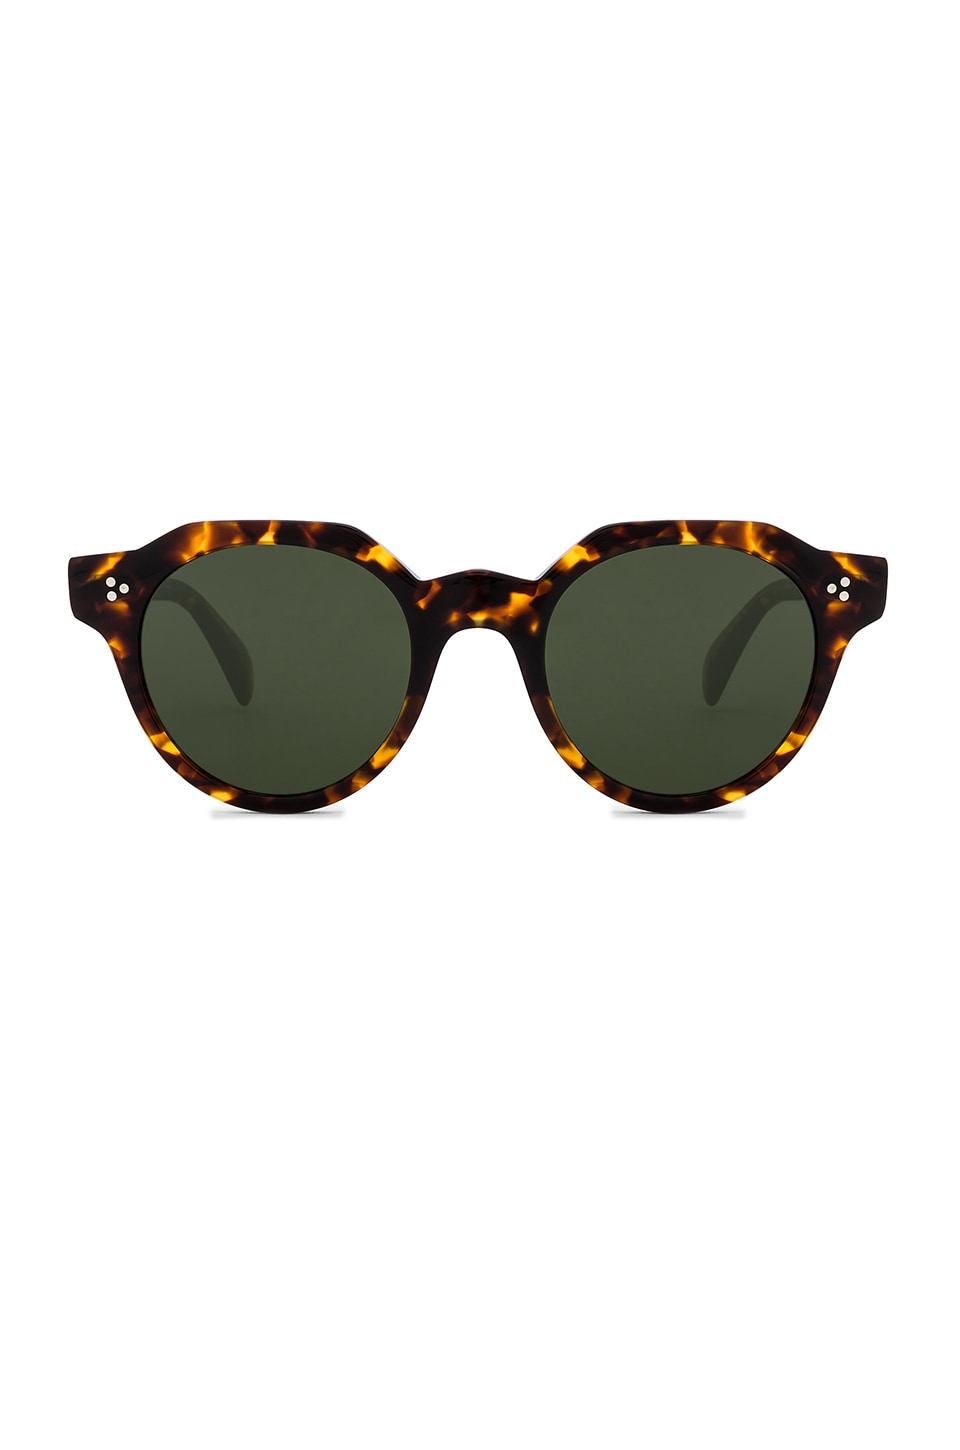 Oliver Peoples Irven in DM2 & Vibrant Green